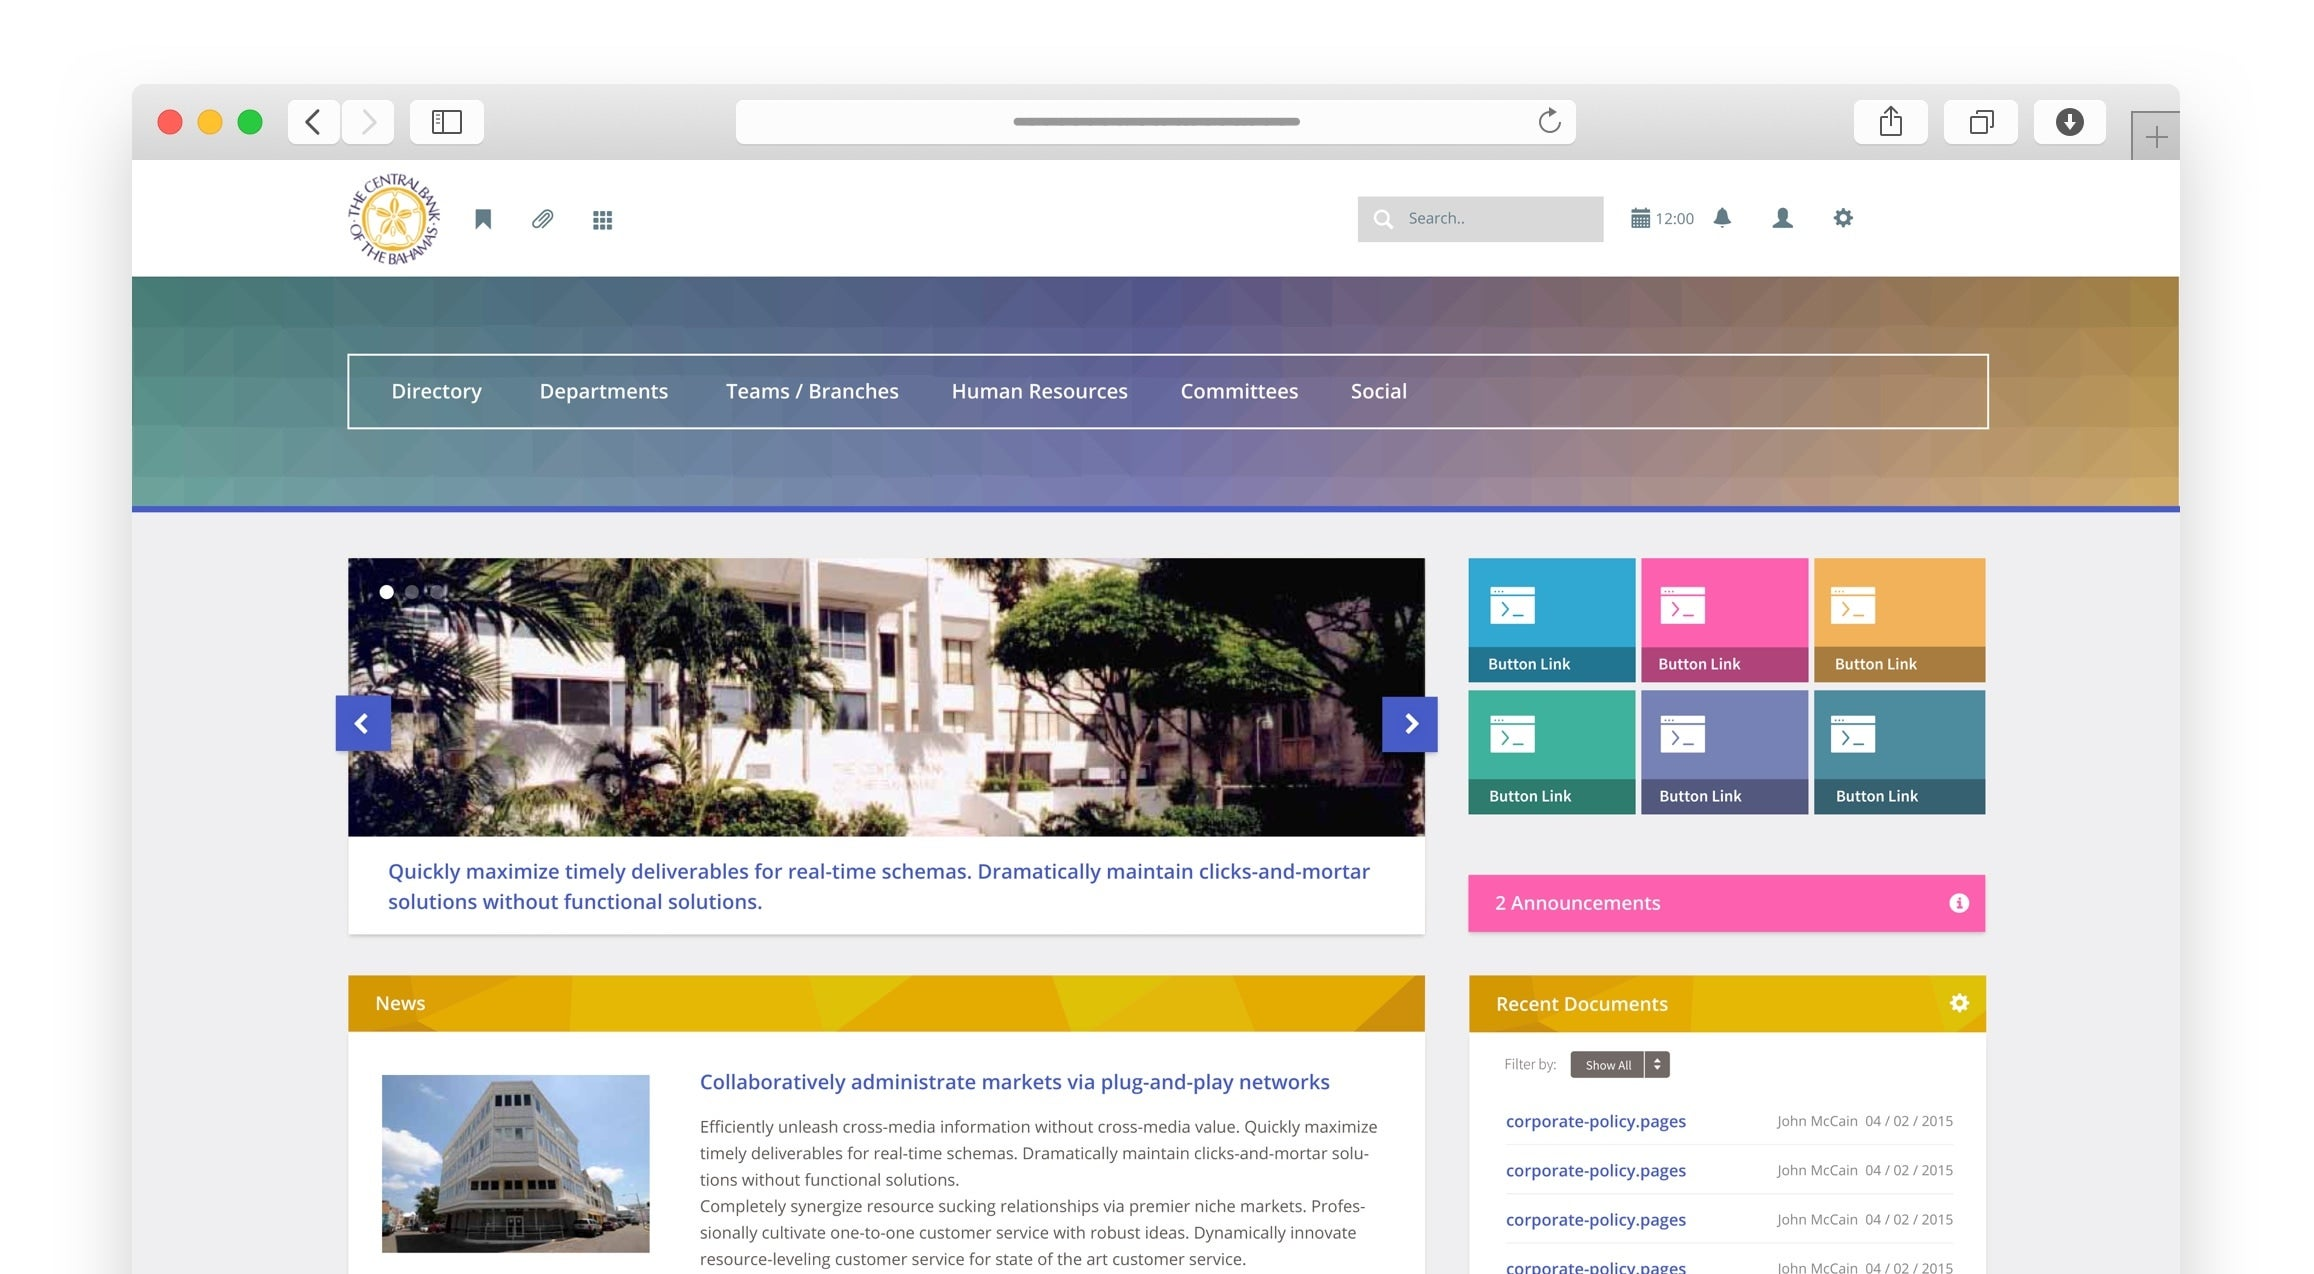 Central Bank of The Bahamas intranet landing page in a browser displaying the homepage components